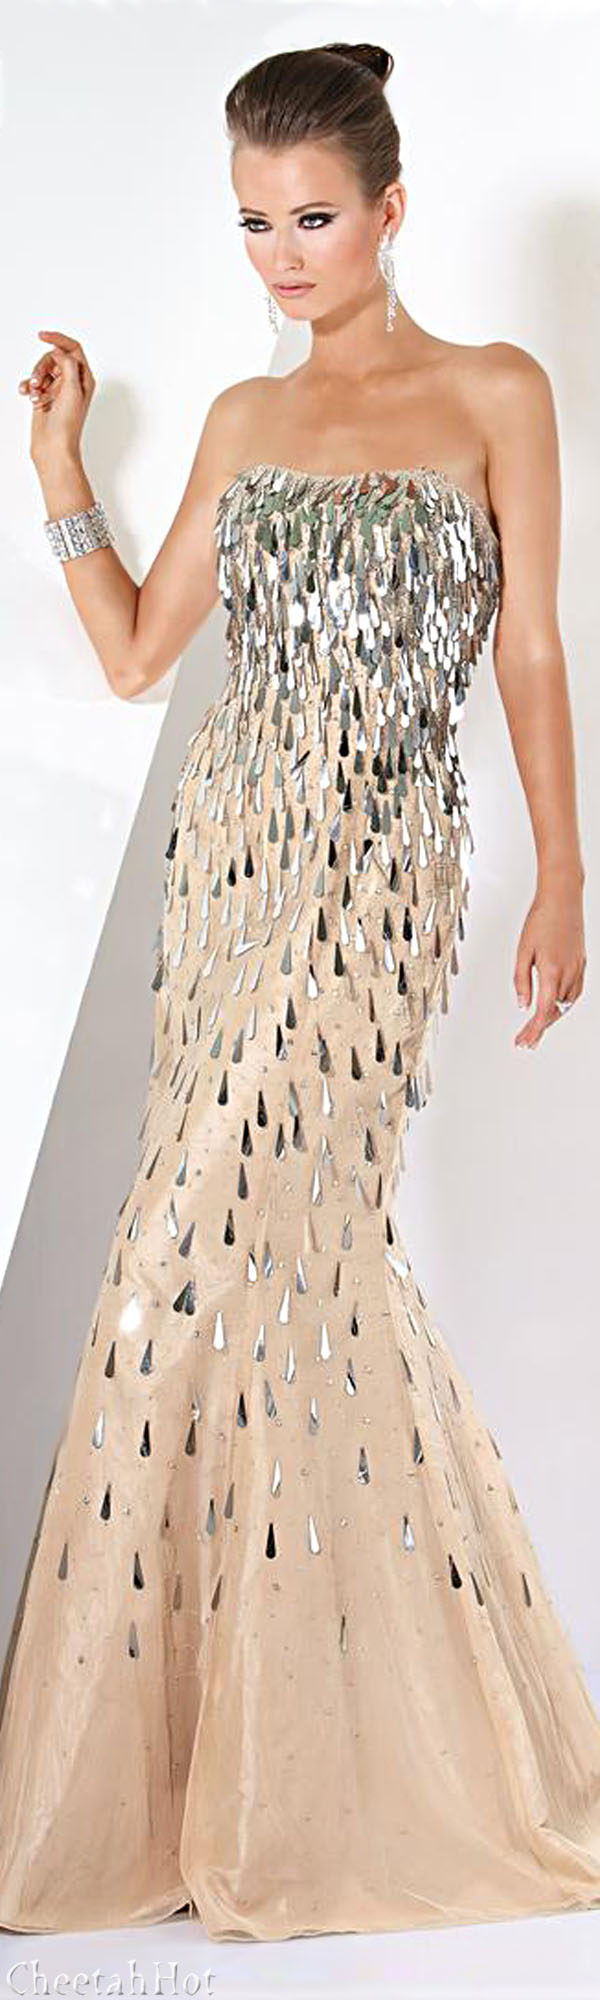 Jovani marvelous metallicus pinterest elegant gown gowns and